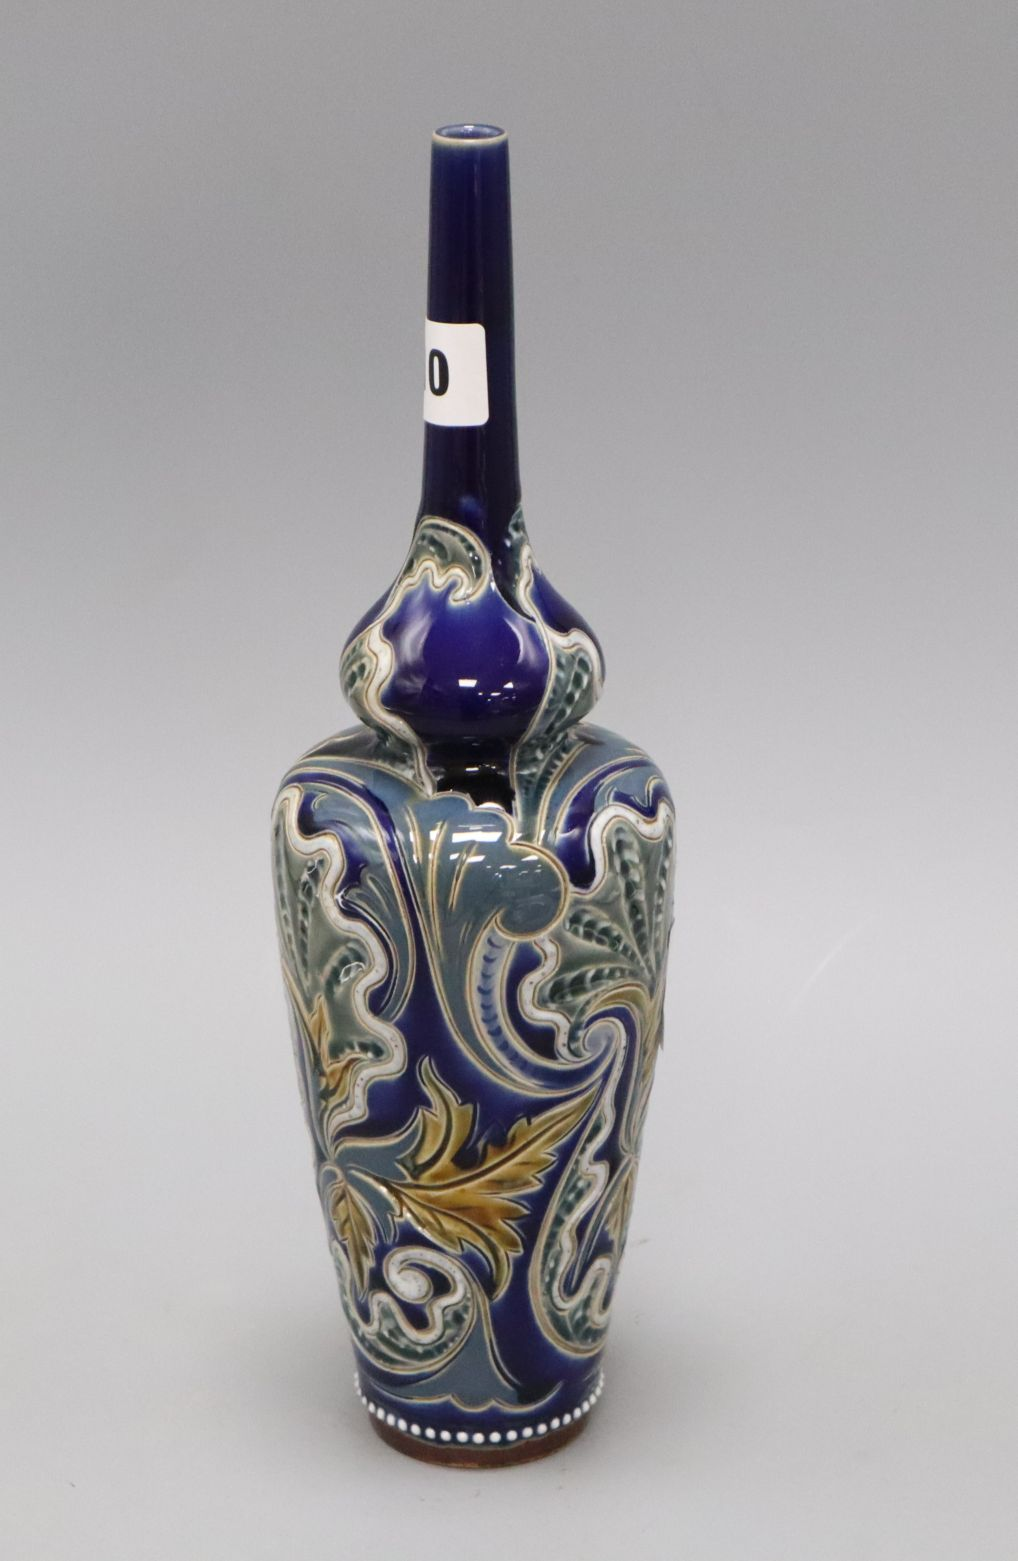 Lot 1010 - A Doulton Lambeth tall slender bottle vase, by Edith D Lupton, no. 966 with incised shell and